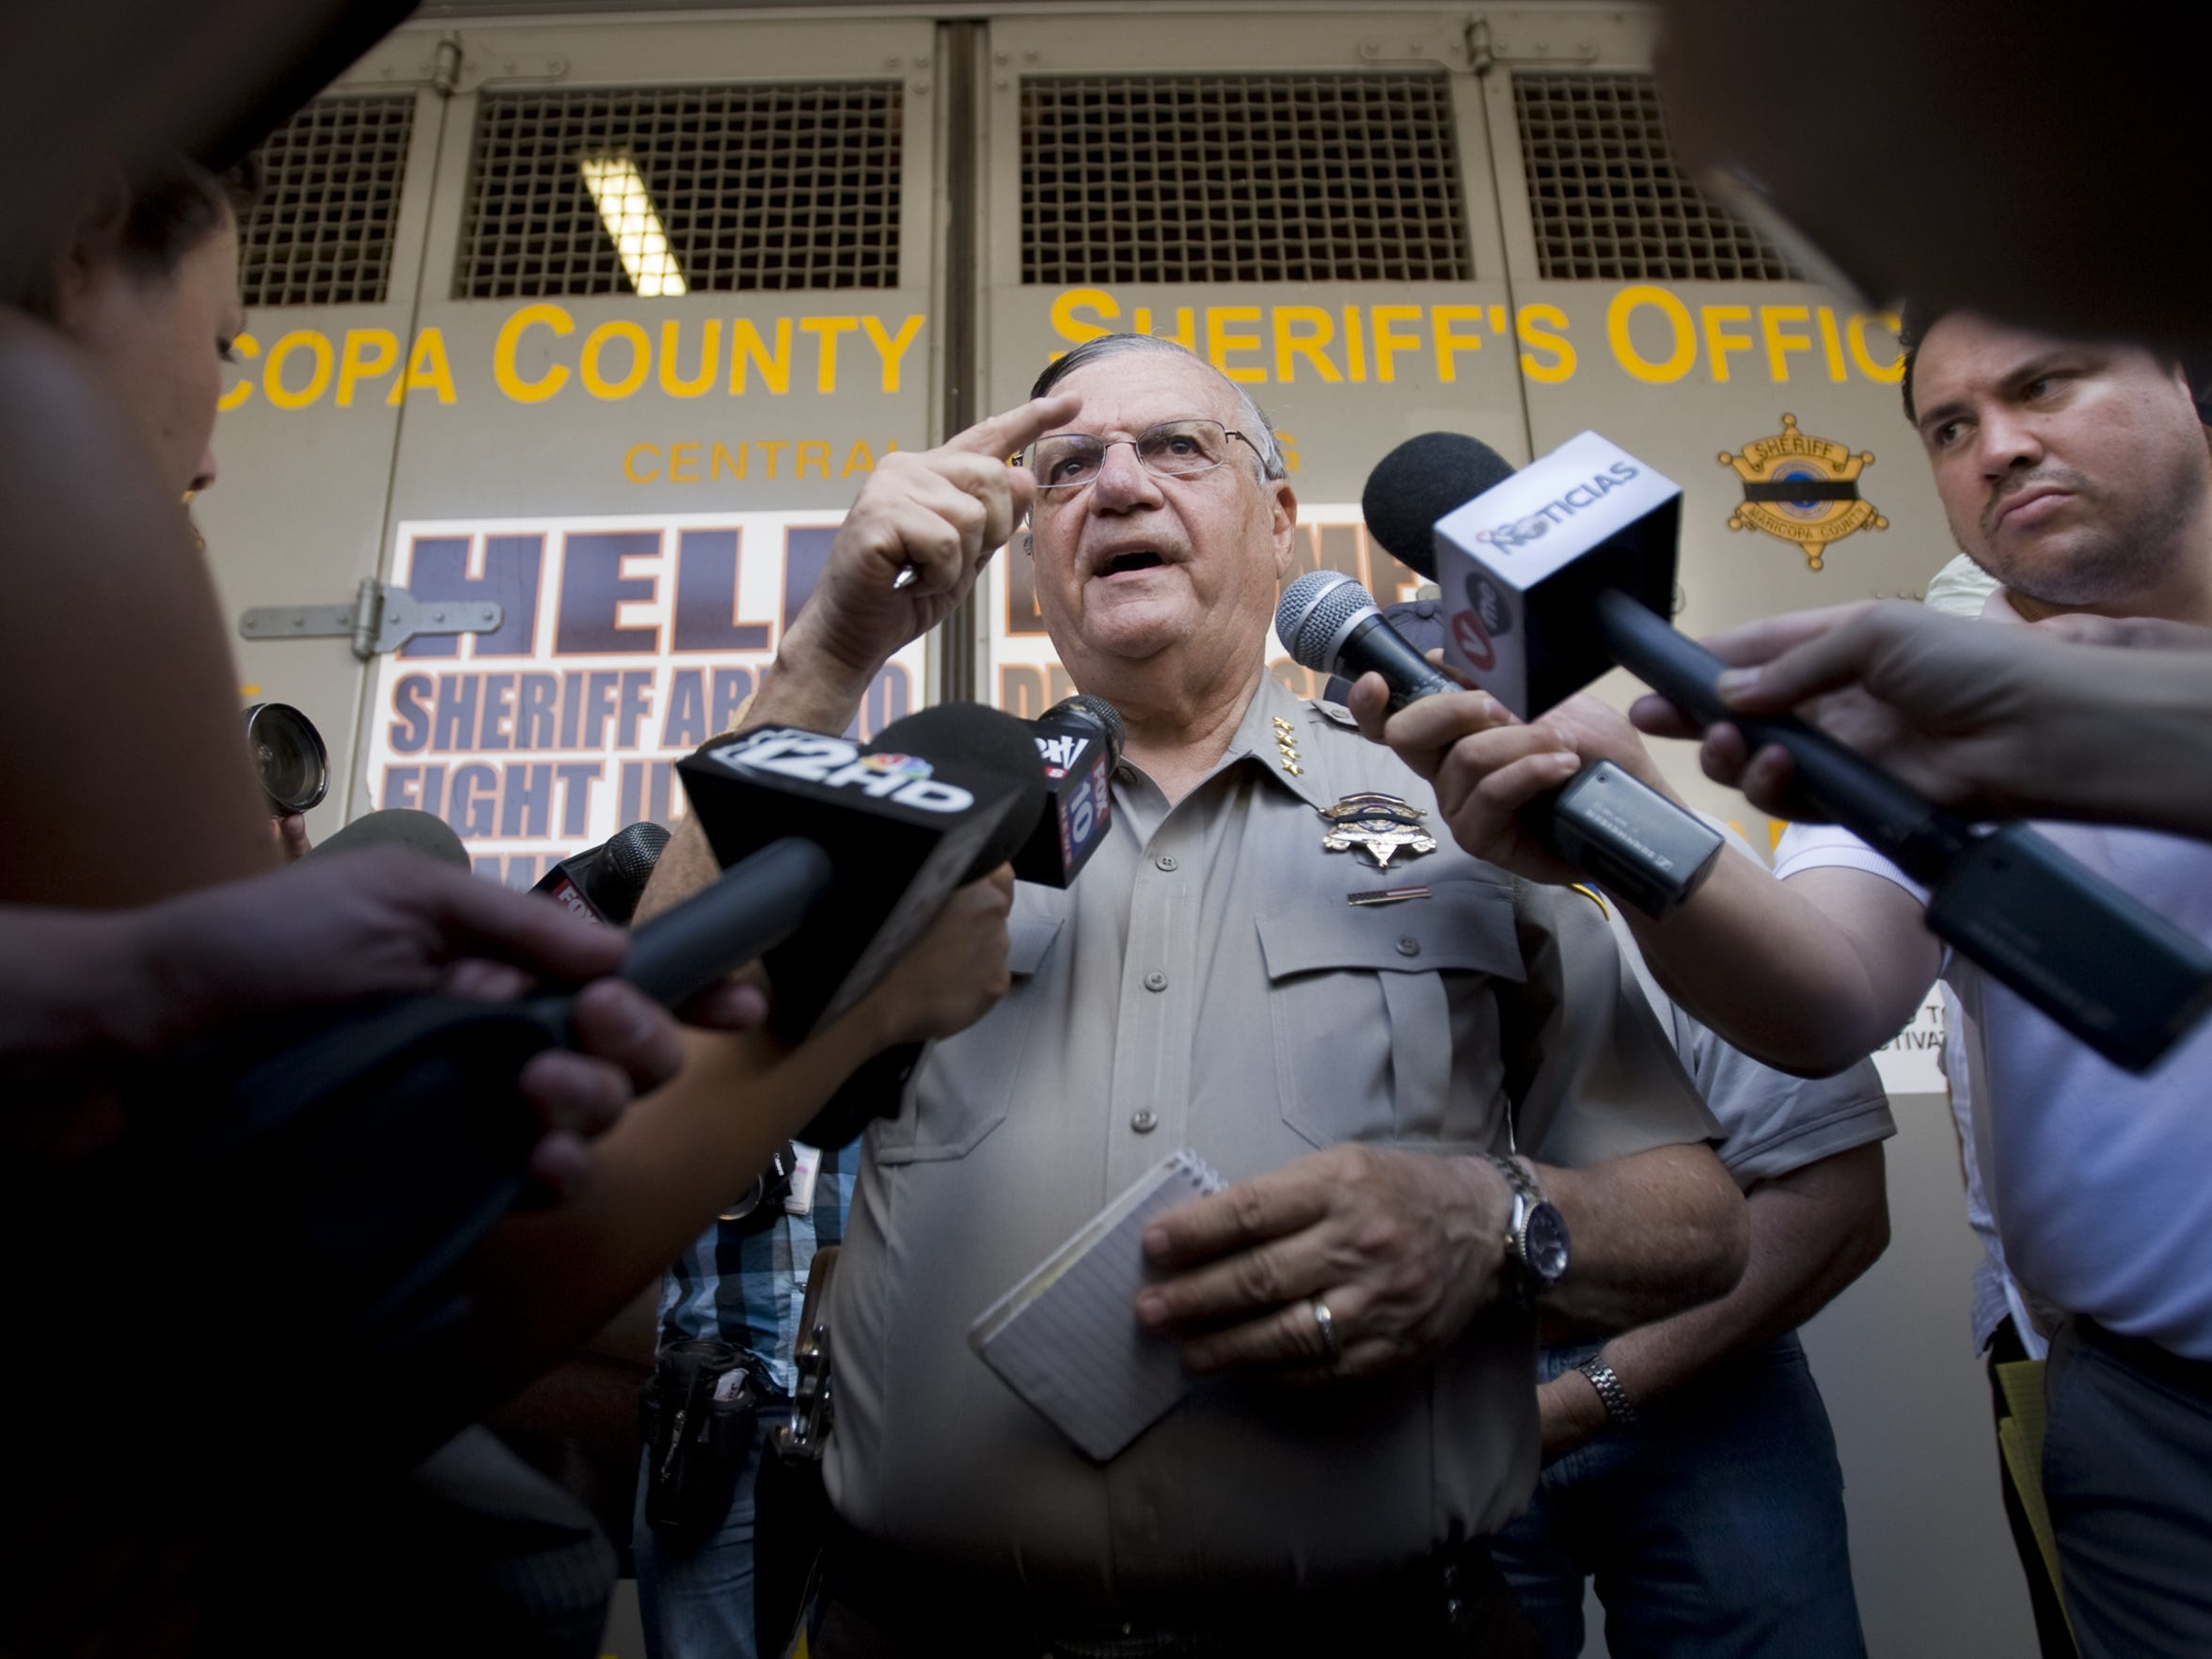 Arpaio speaks to media members in 2010, the year the U.S. Department of Justice yanked the certification that allowed his agency to enforce federal immigration law.